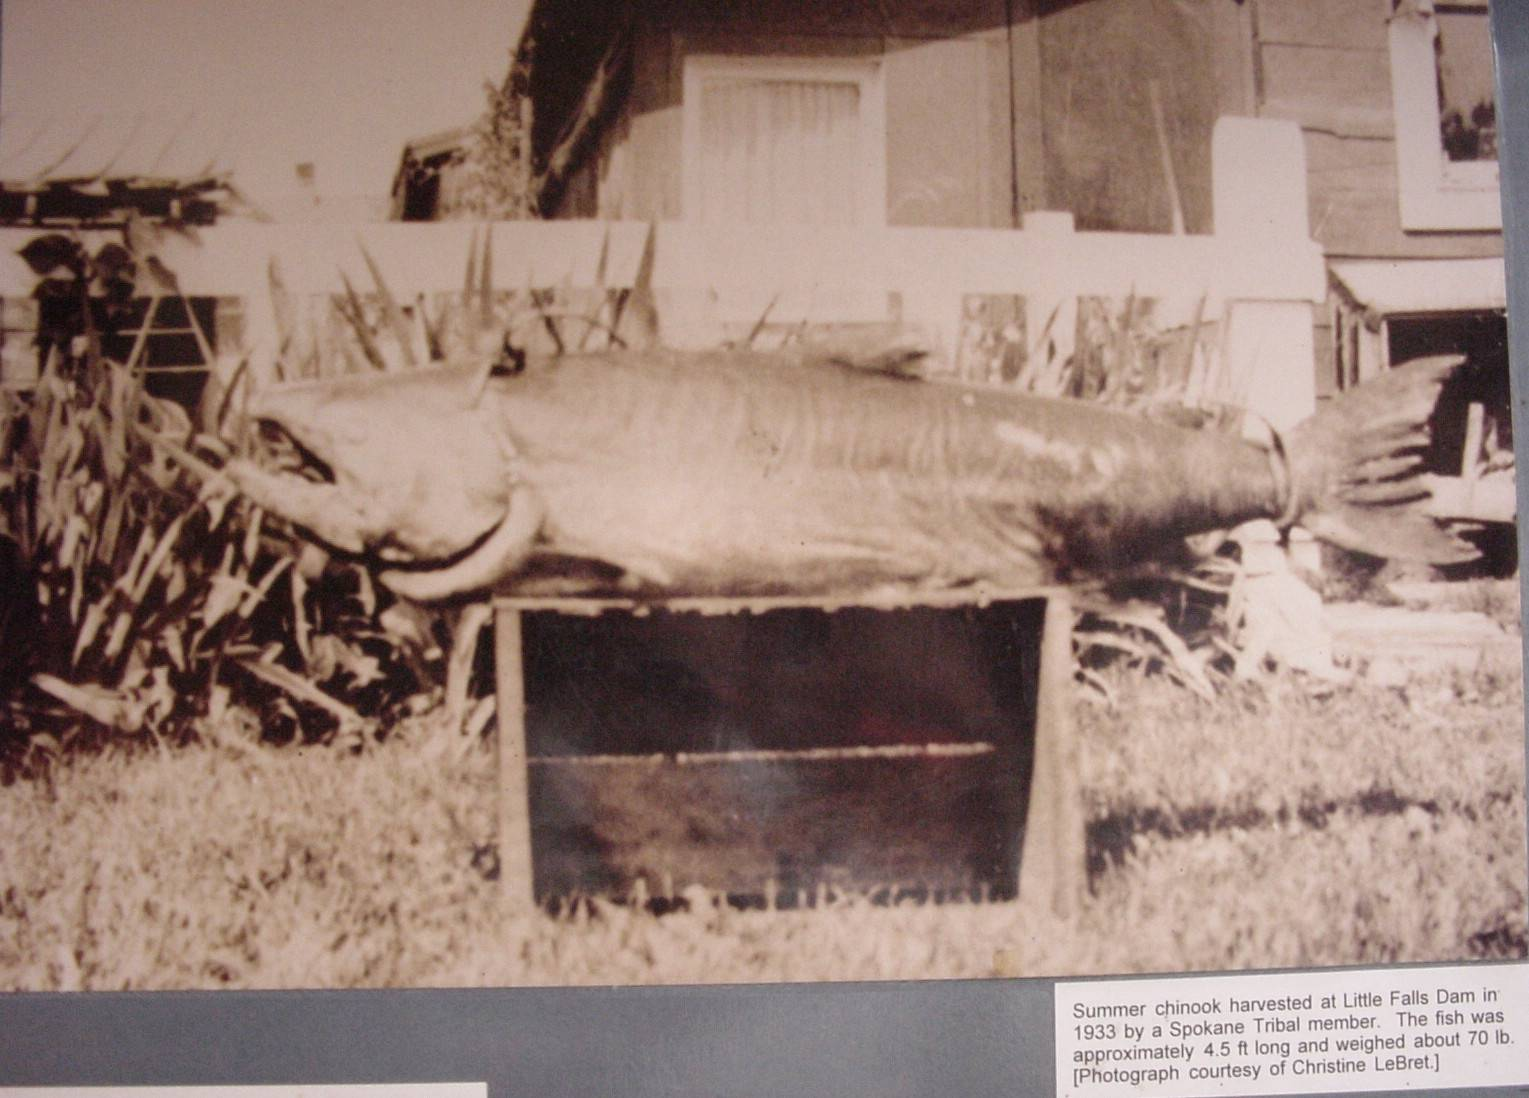 Very large salmon, such as this 70 pound, 4.5 foot long Chinook Salmon once provided food for native peoples of the area.